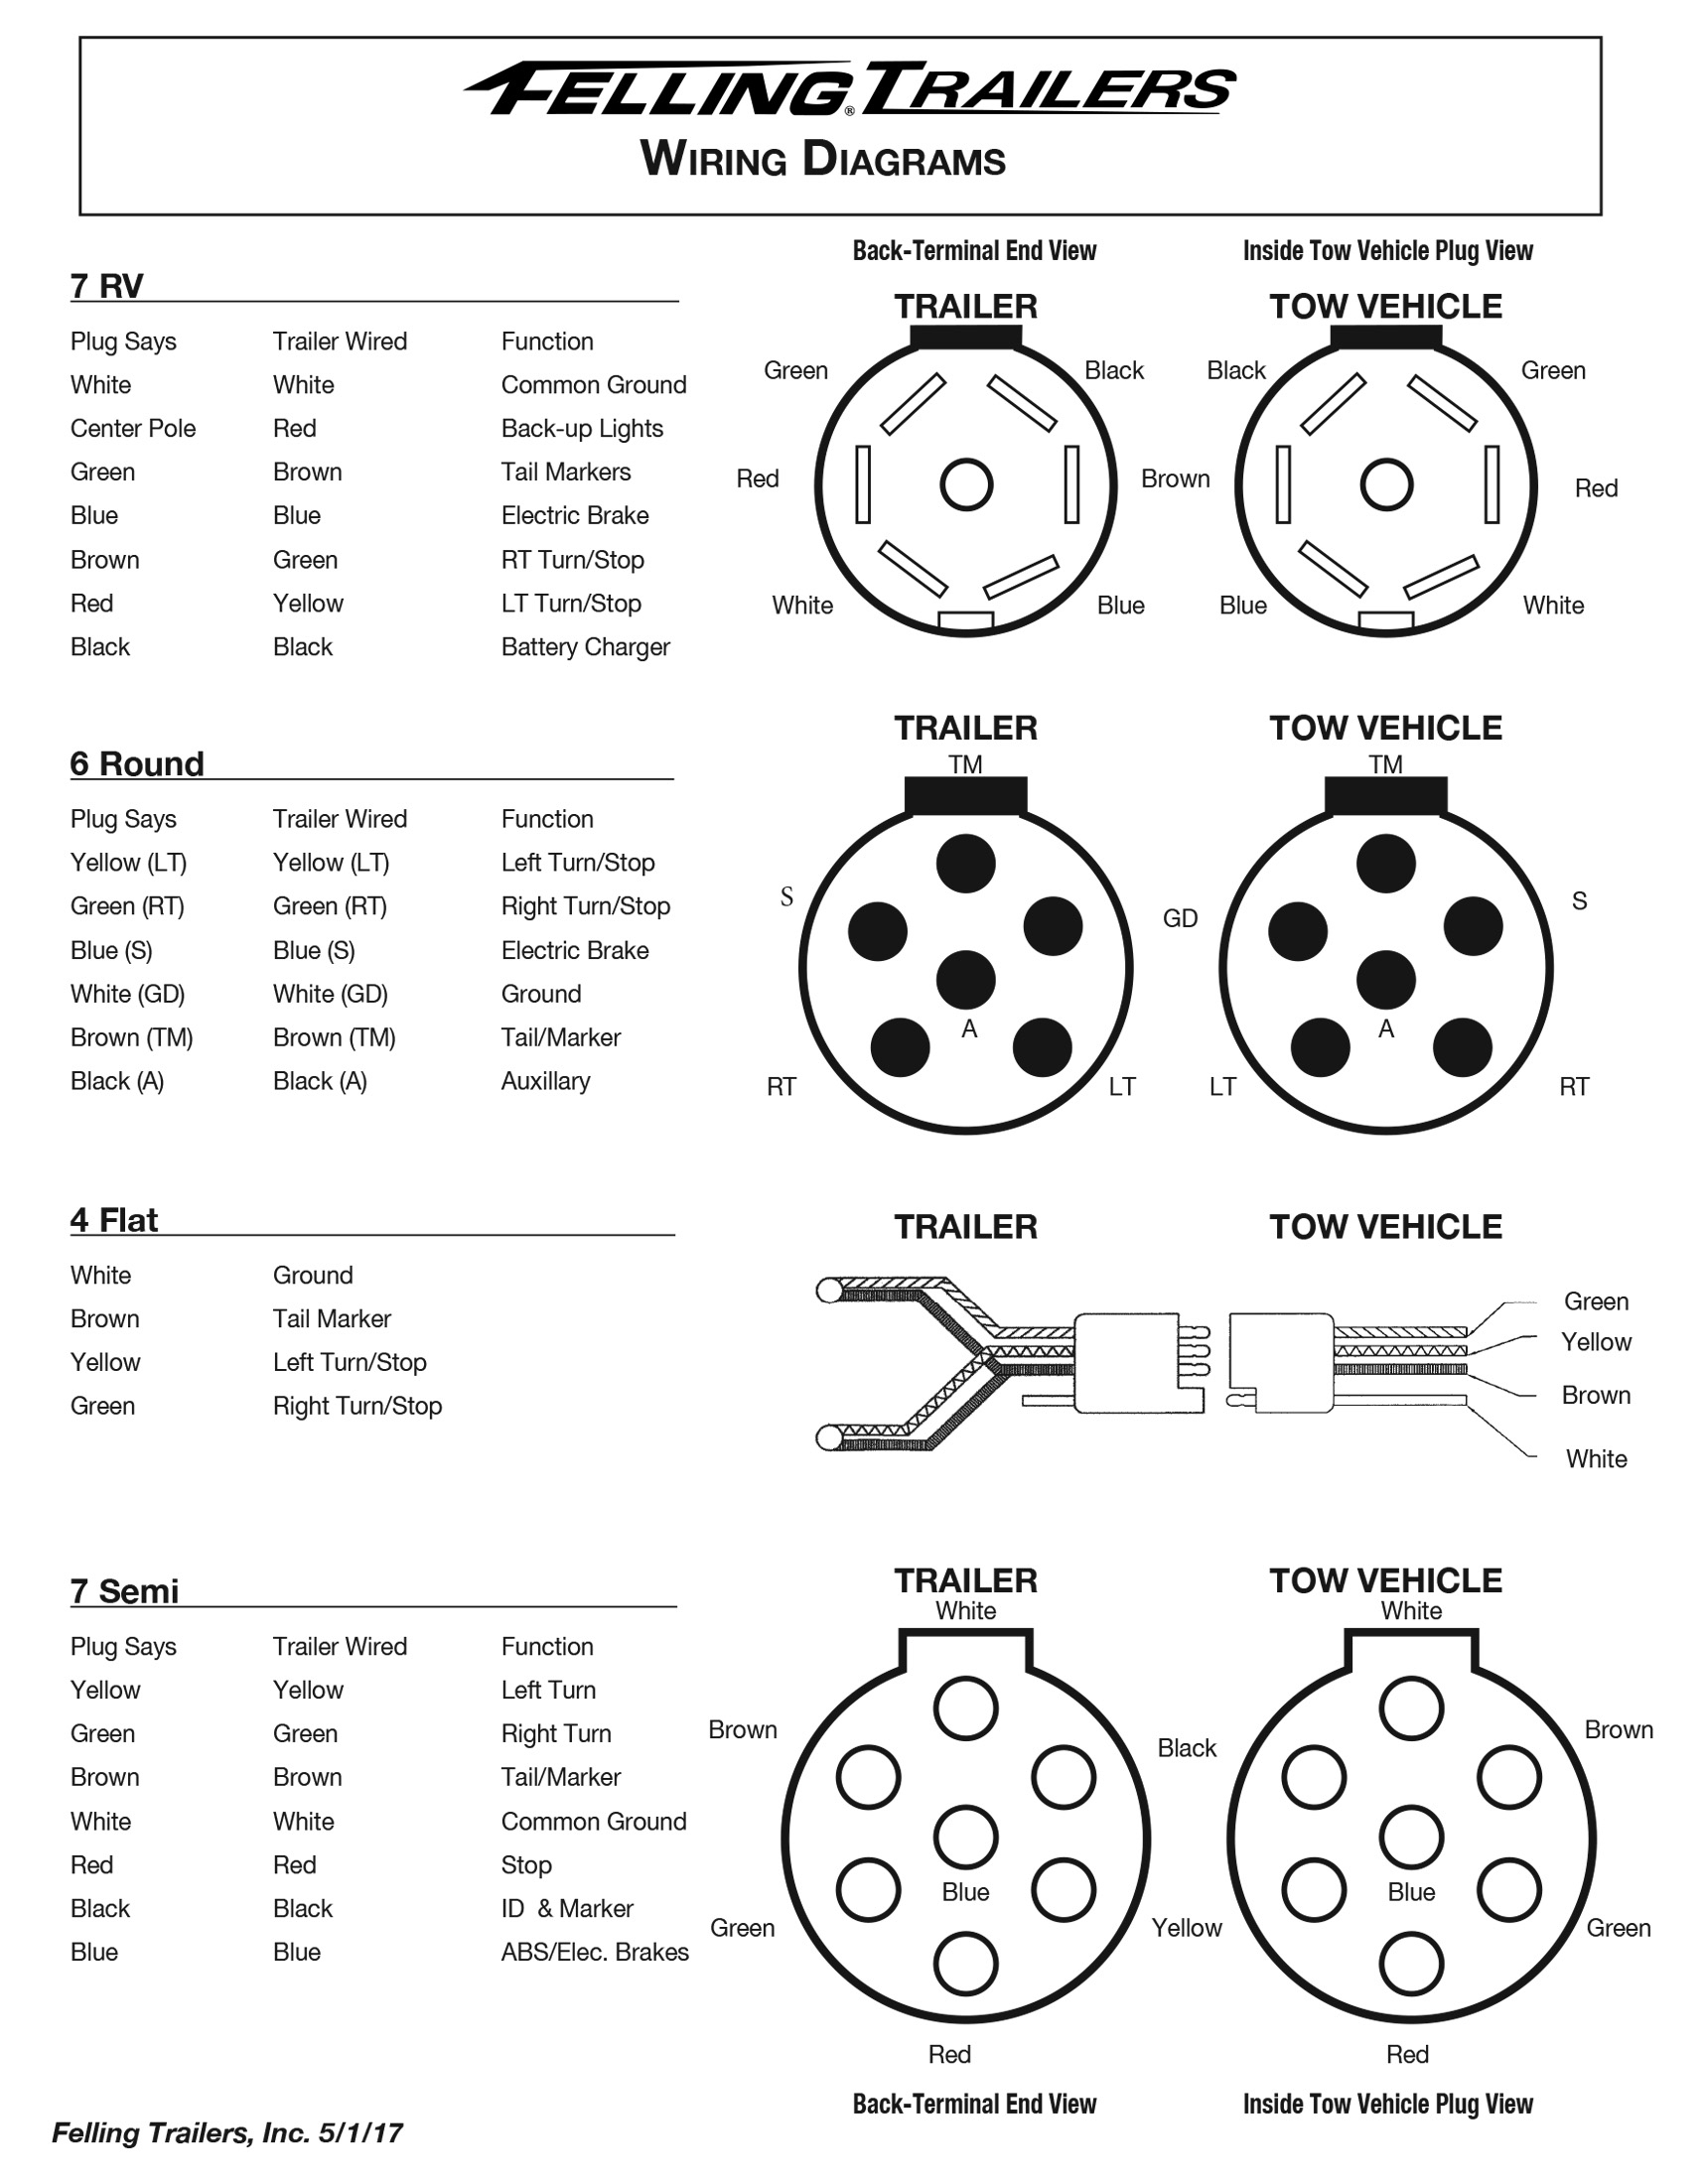 Abs Trailer Plug Wiring Diagram | Wiring Diagram - Abs Trailer Plug Wiring Diagram